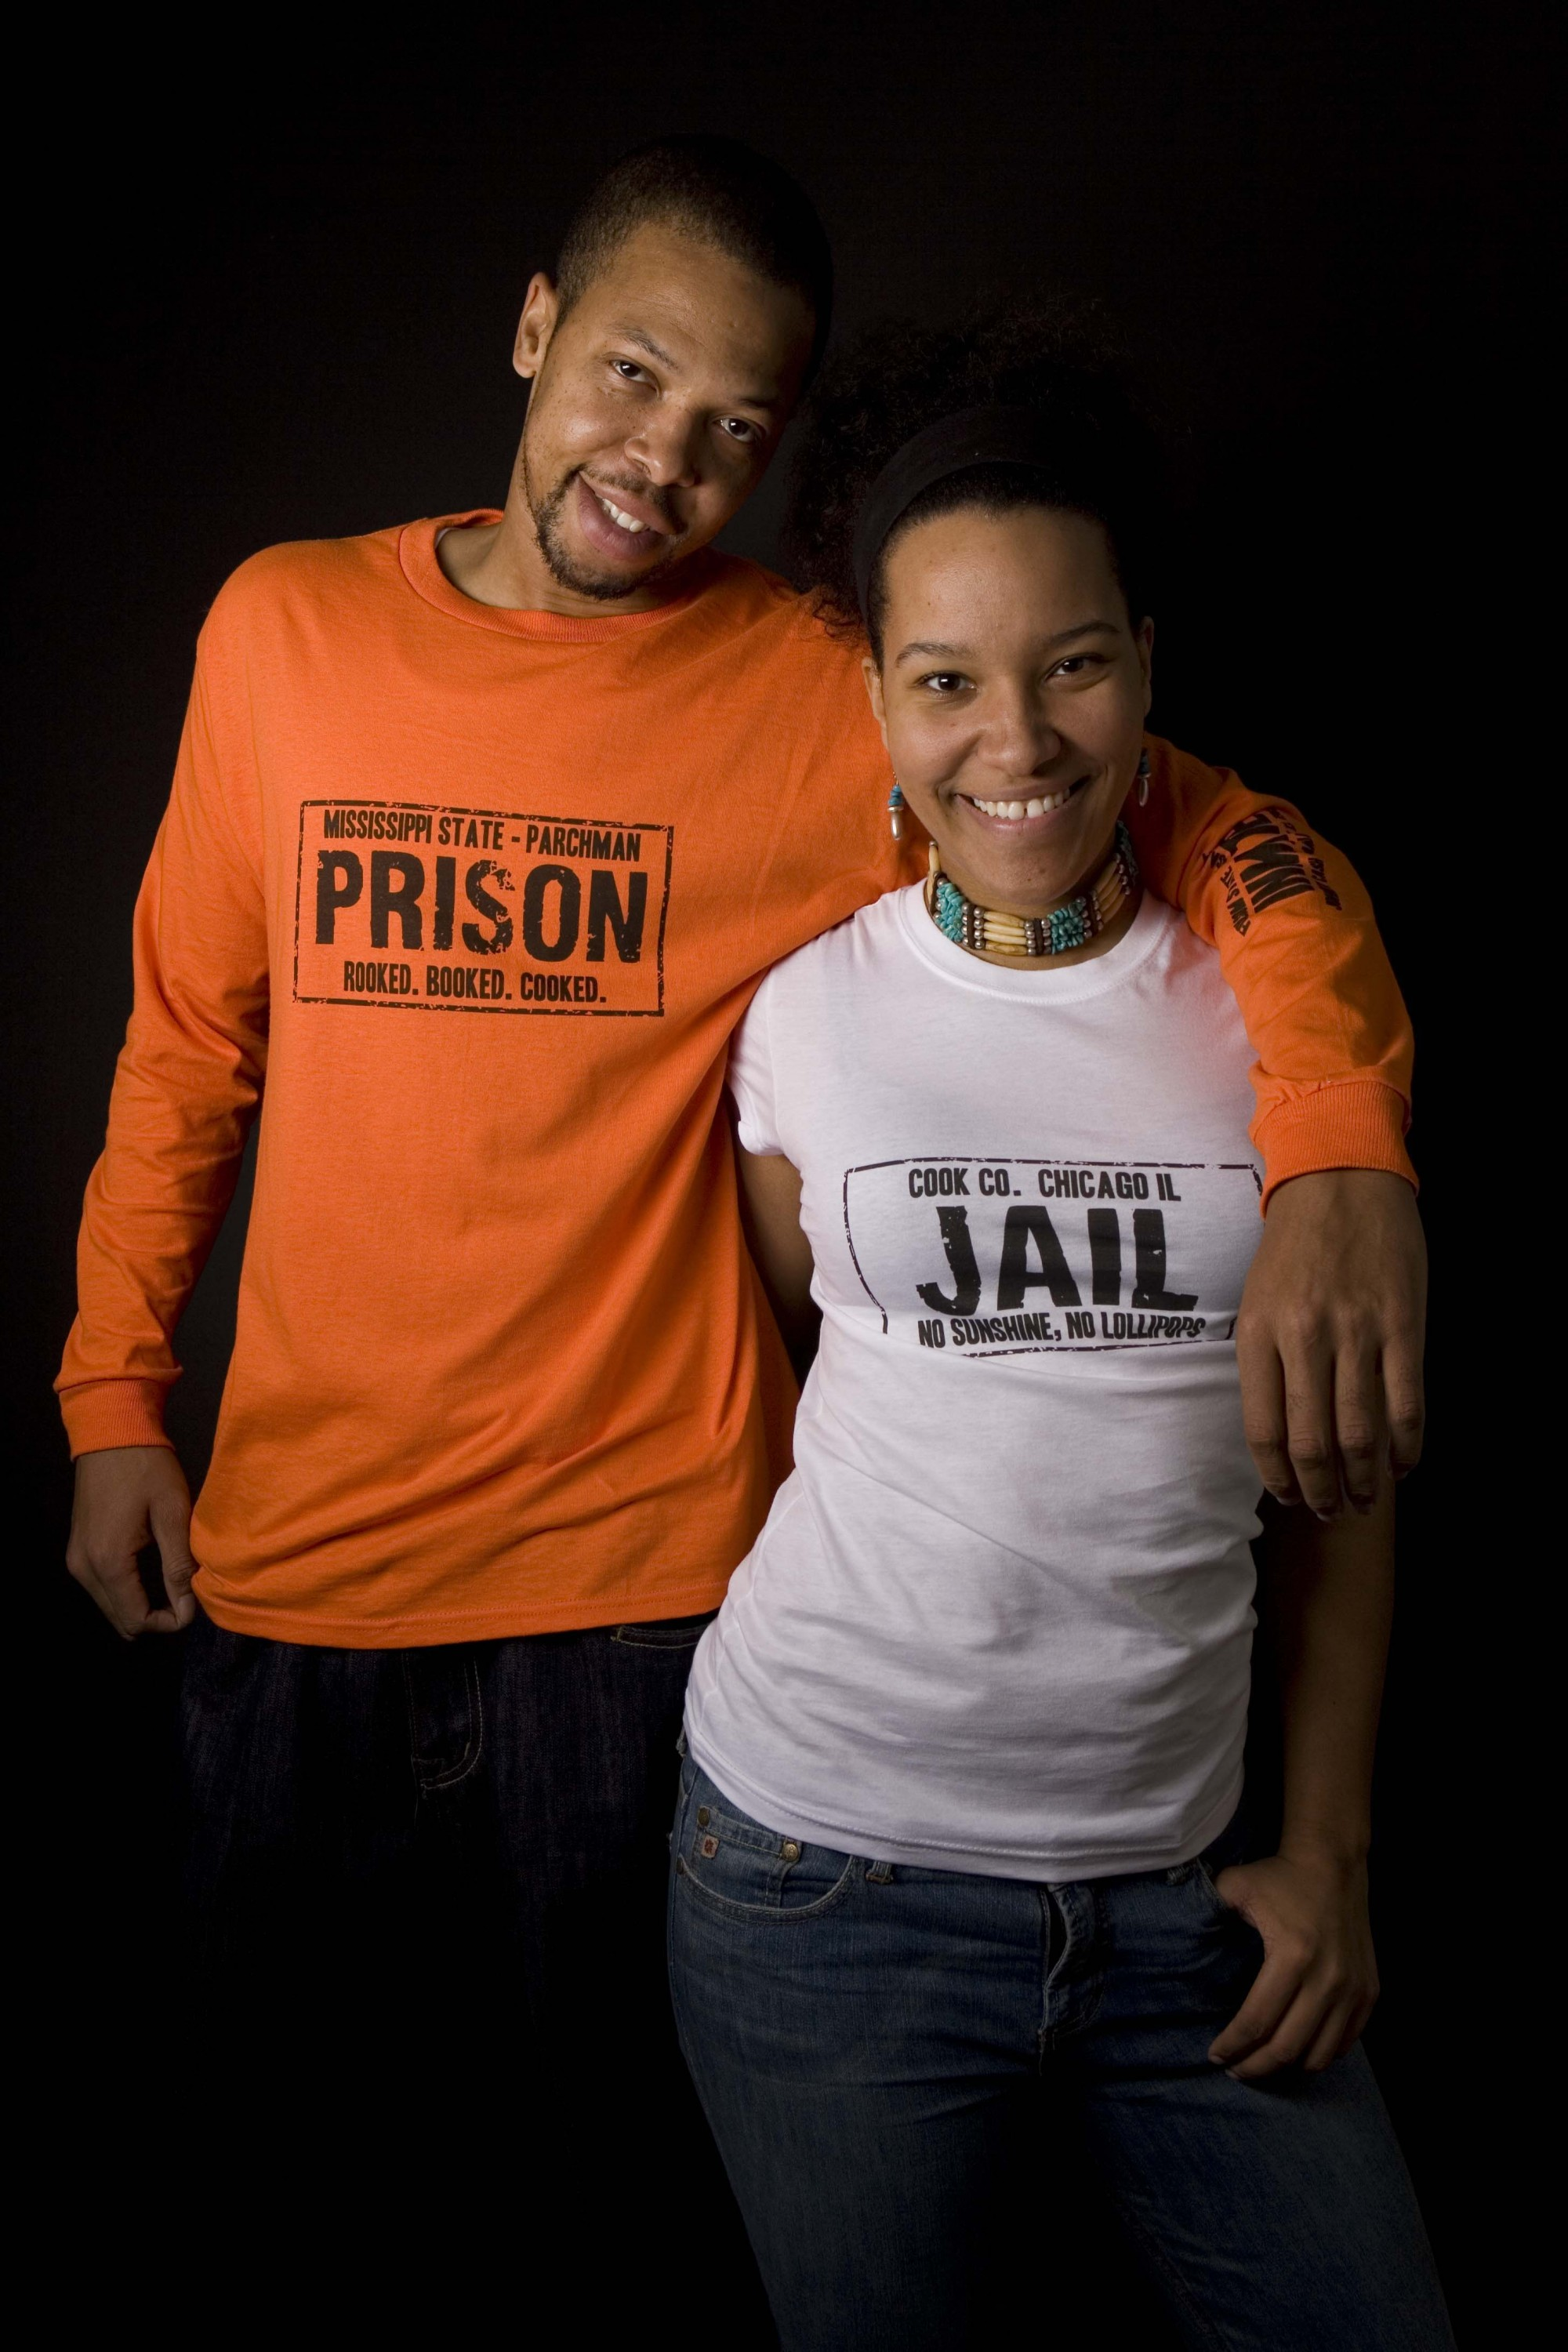 Inmate's Relationships with Spouses rarely last